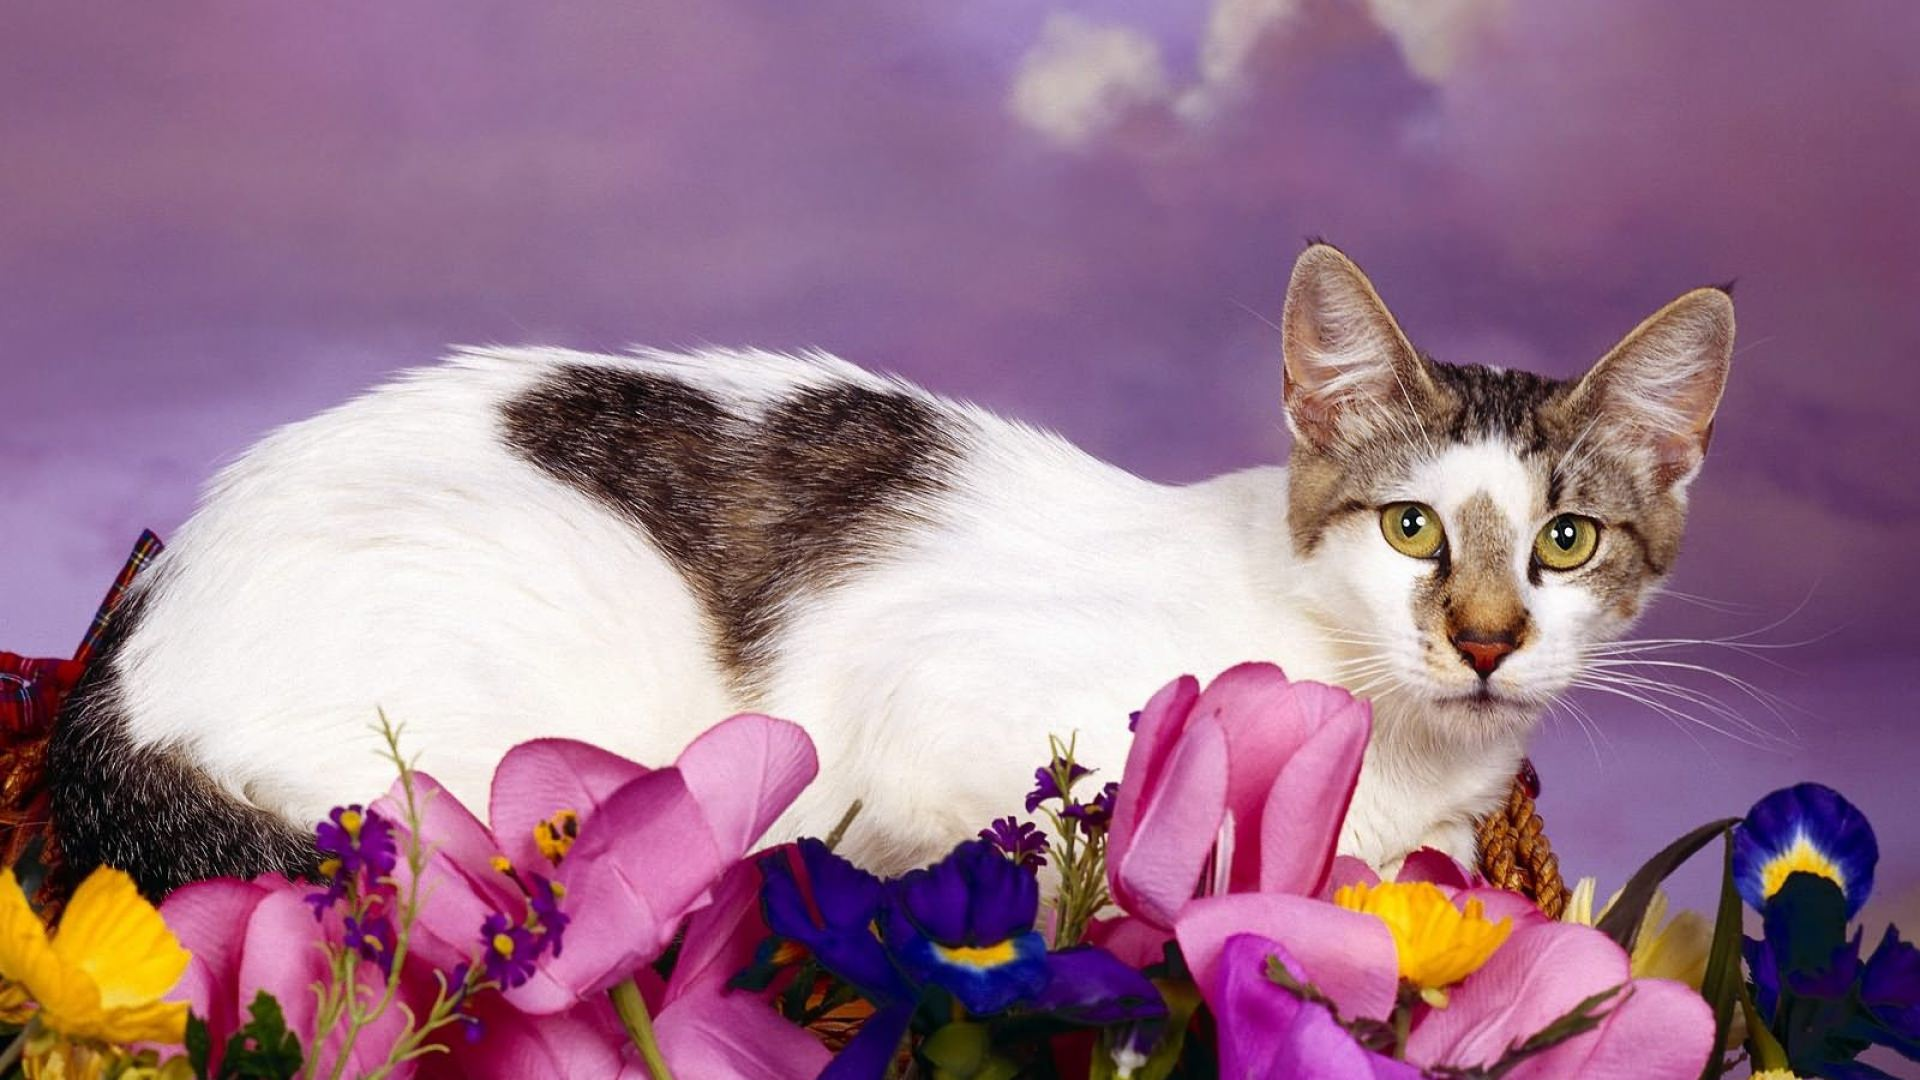 Cat sit on Flowers Background